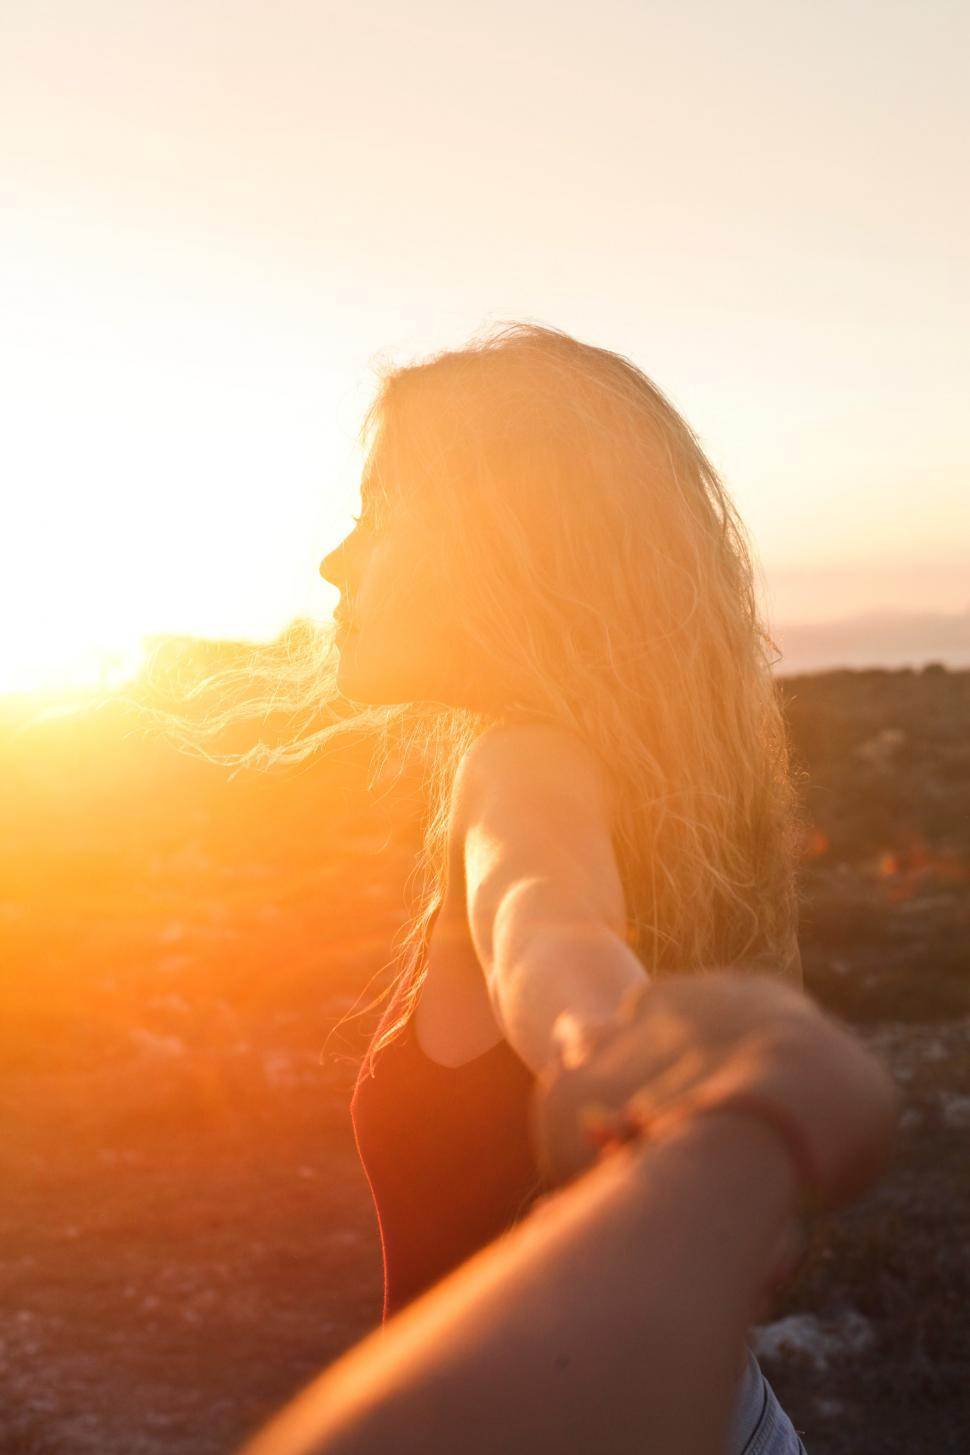 Download Free Stock HD Photo of A young blonde woman looking at the sunset Online